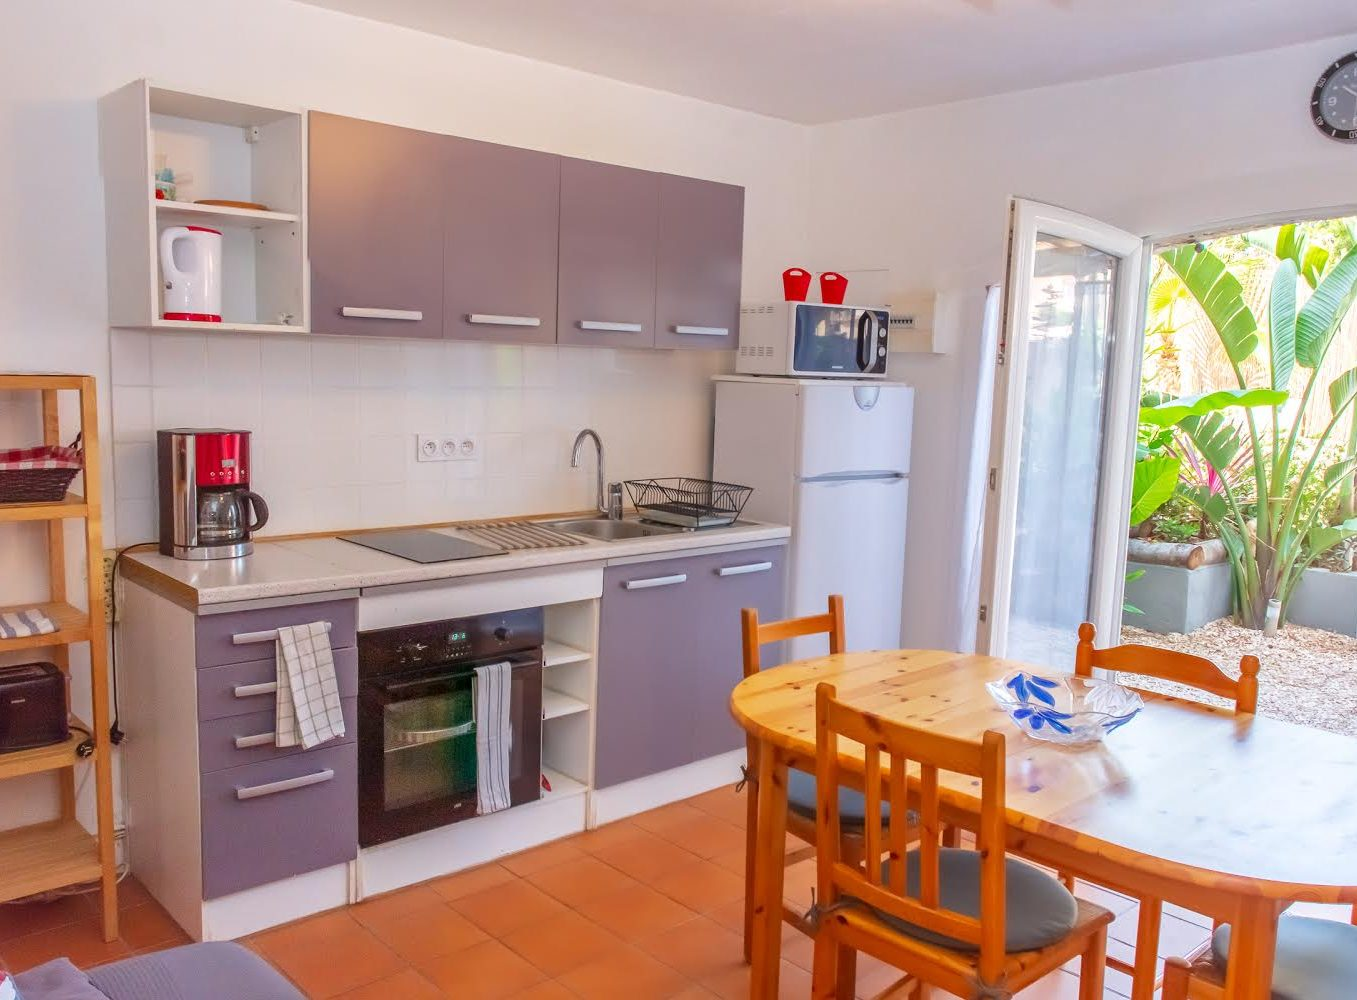 Location appartement giens hyeres papa-iti cuisine